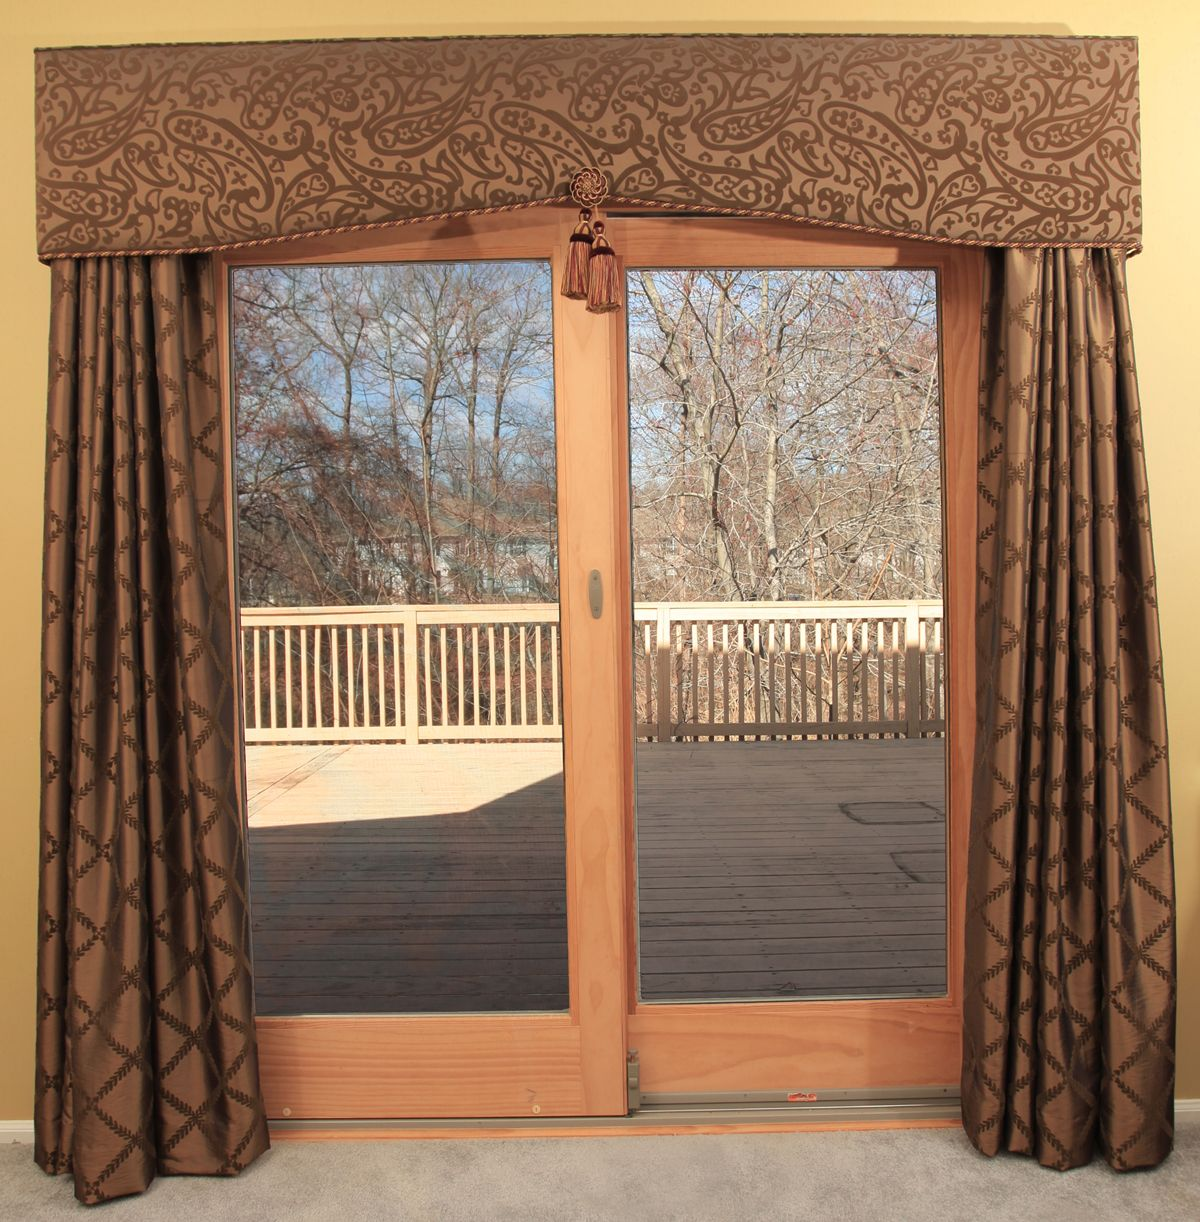 Best curtains for sliding glass doors - Patio Door Cornice And Drapery Traditional Curtains Newark Marina Klima Goldberg Klima Design Group